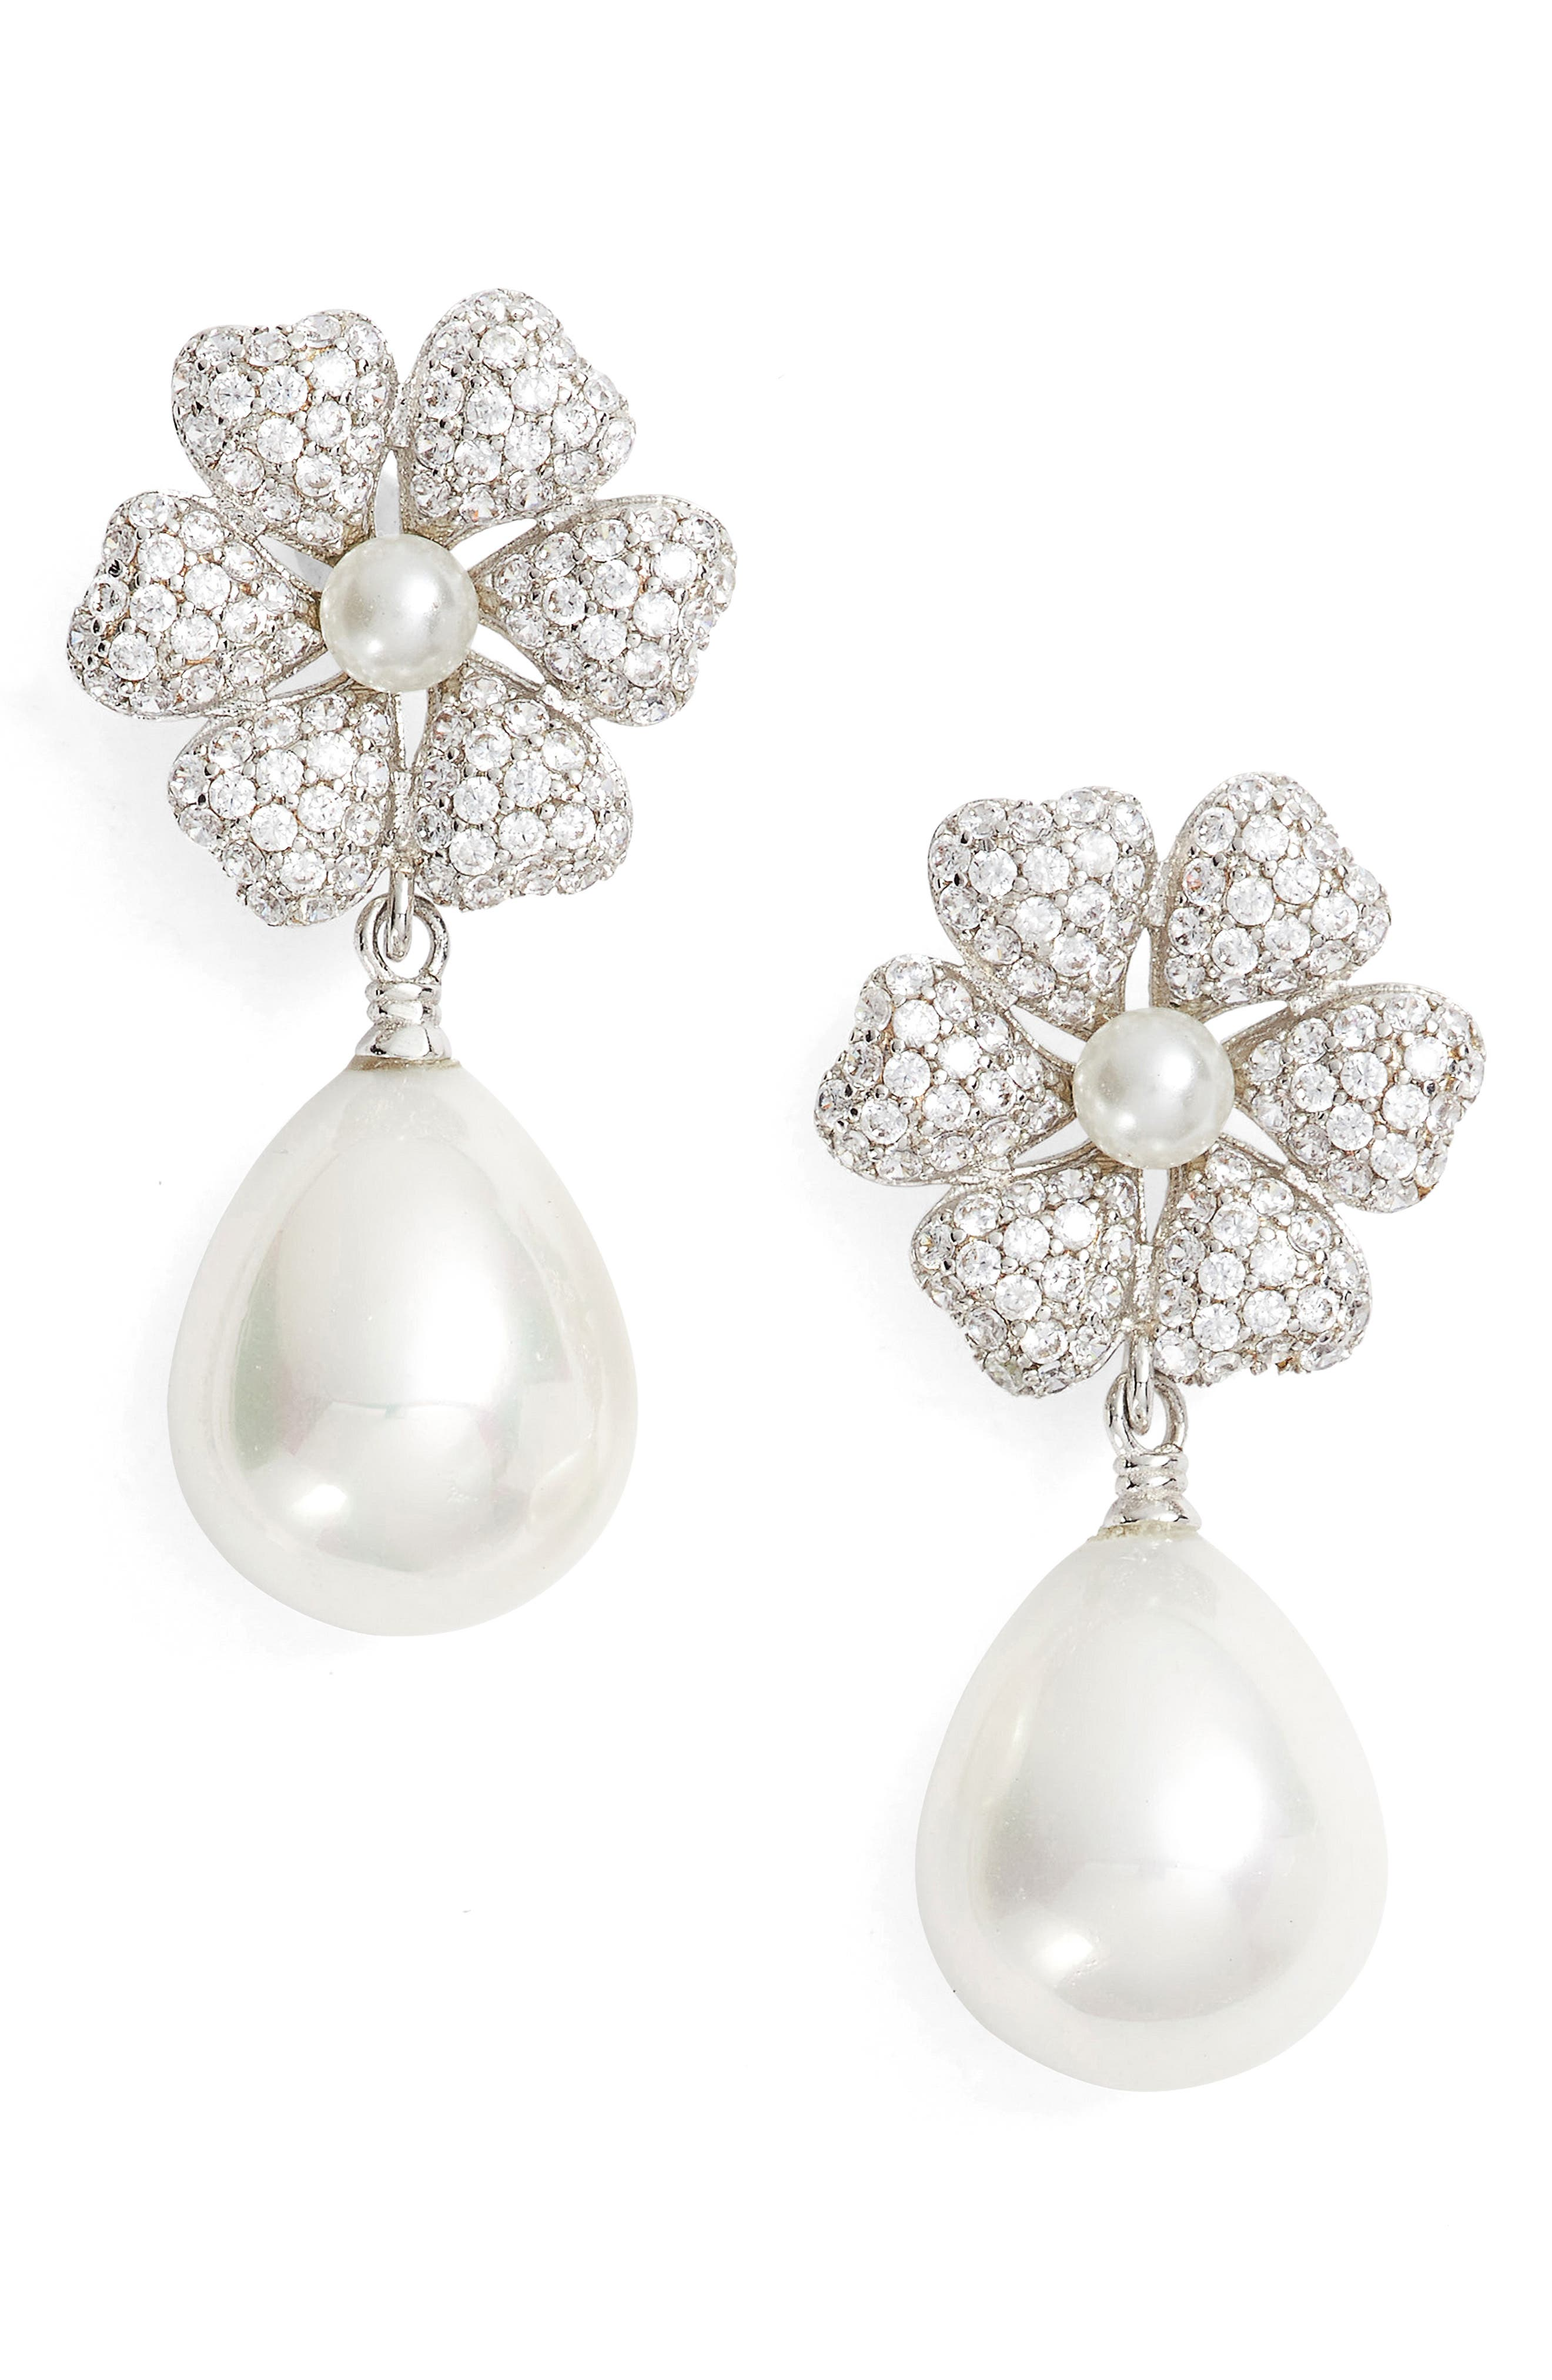 Imitation Pearl & Crystal Drop Earrings,                         Main,                         color, Ivory Pearl / Silver